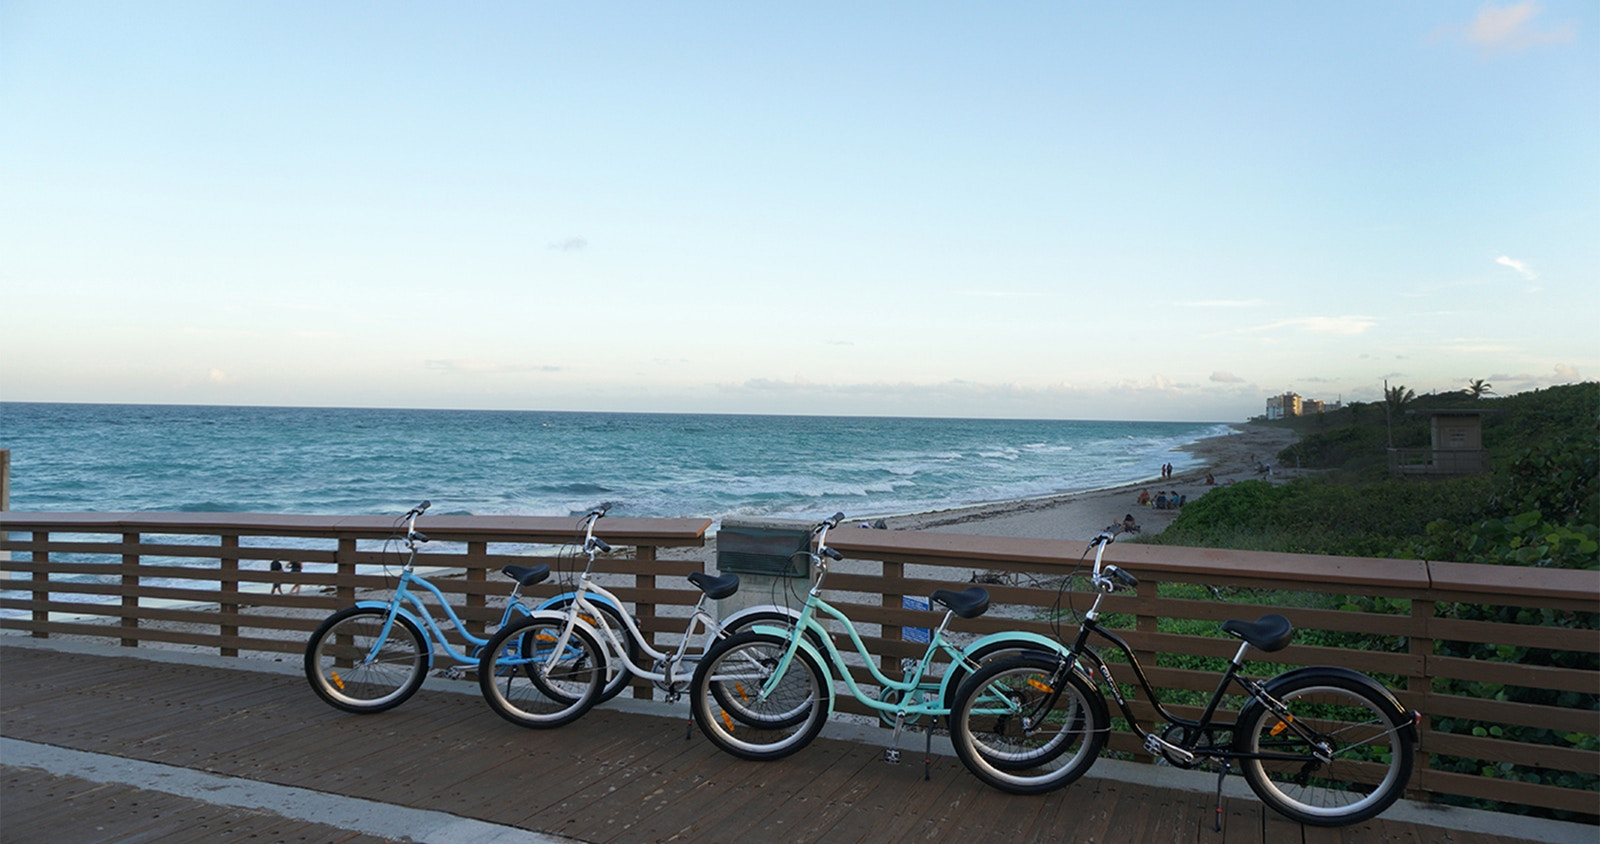 Tri Bike Run offers new bikes so you can stay healthy and fit with a bicycle.